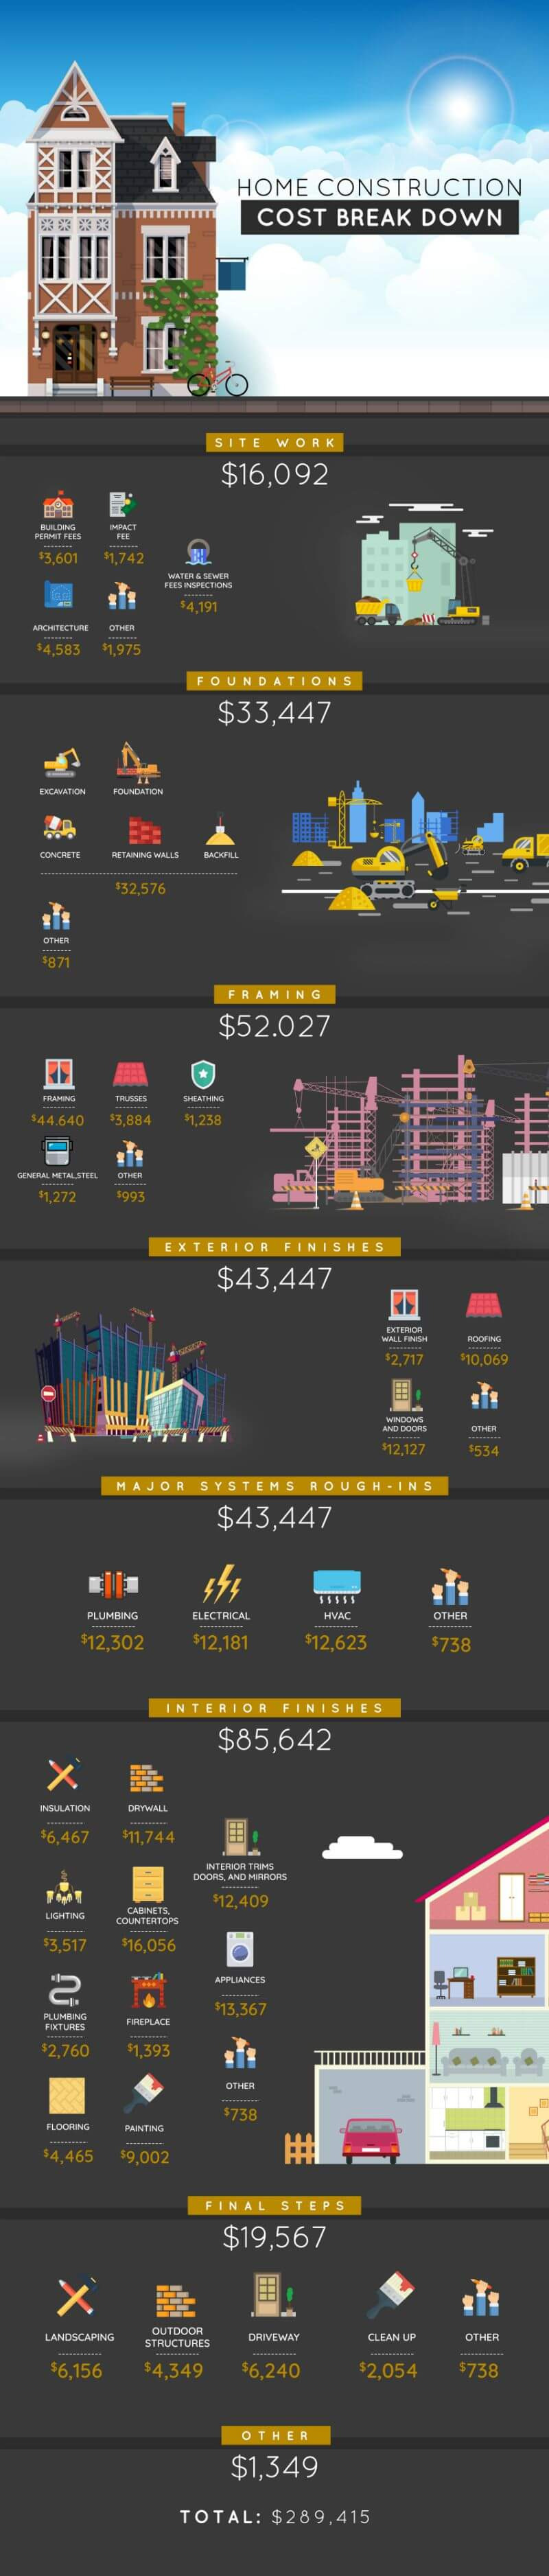 Cost to Build A 4 Bedroom House Awesome How Much It Costs to Build A House Infographic